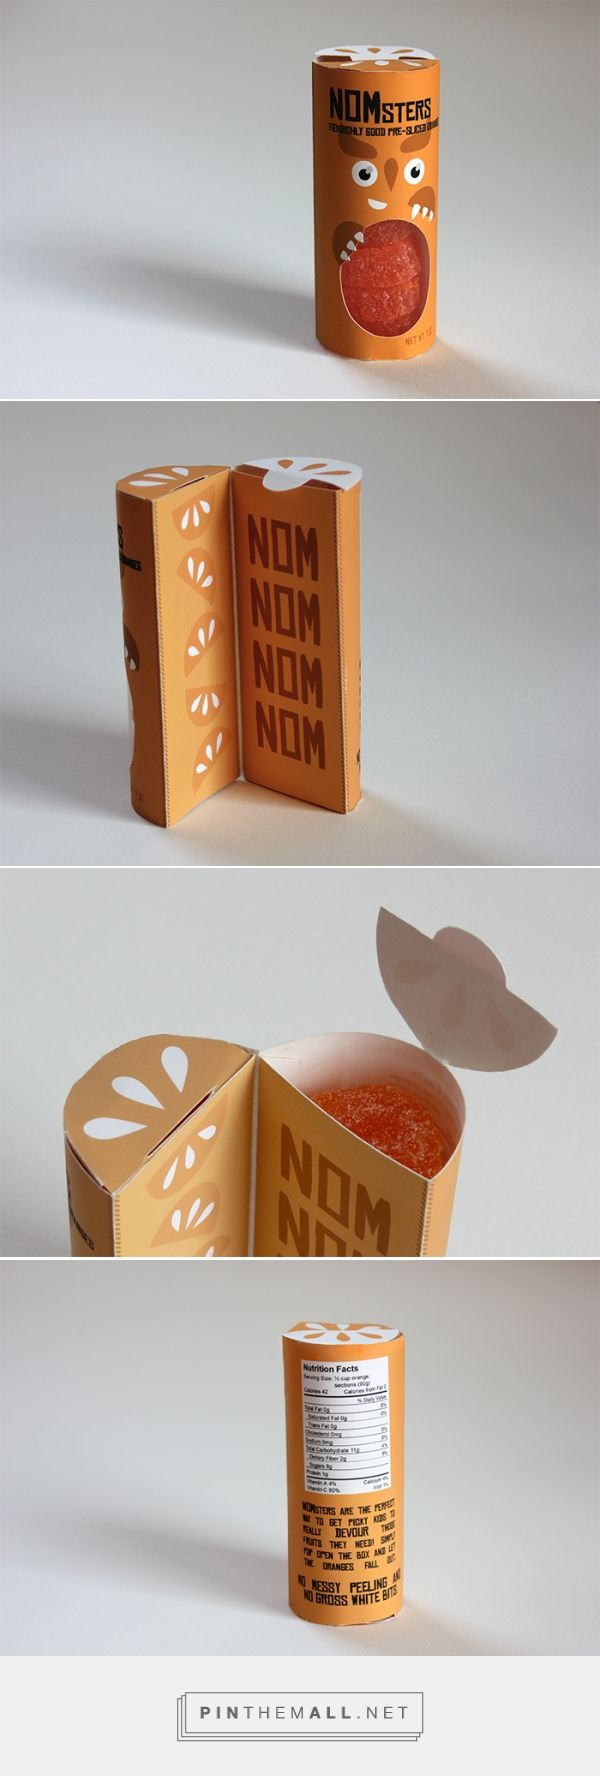 NOMsters Pre-Sliced Oranges, designed by Megan Carrell. Pin curated by #SFields99 #packaging #design